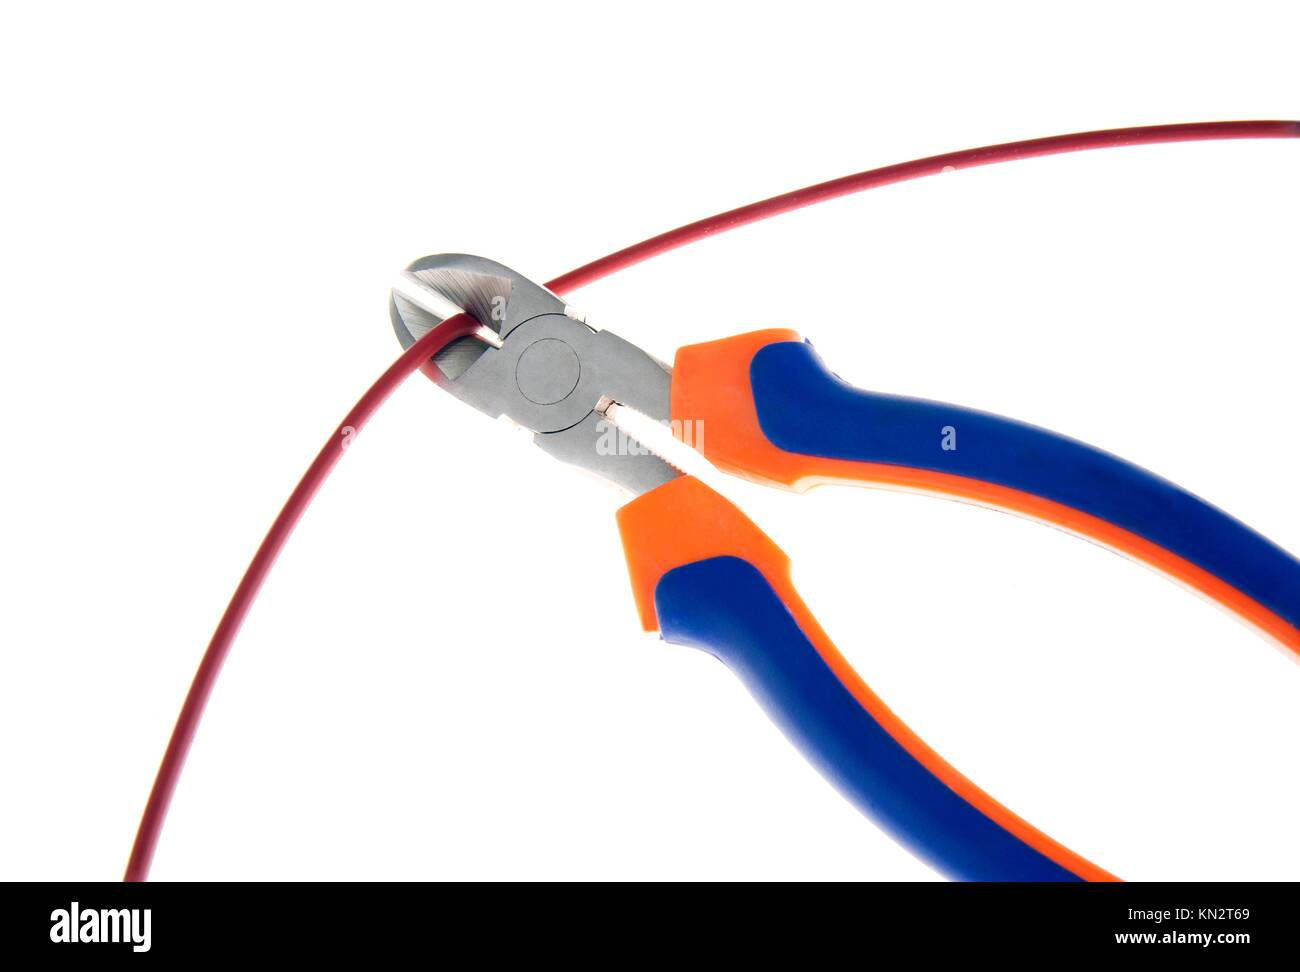 Electric Detonator Cut Out Stock Images & Pictures - Alamy